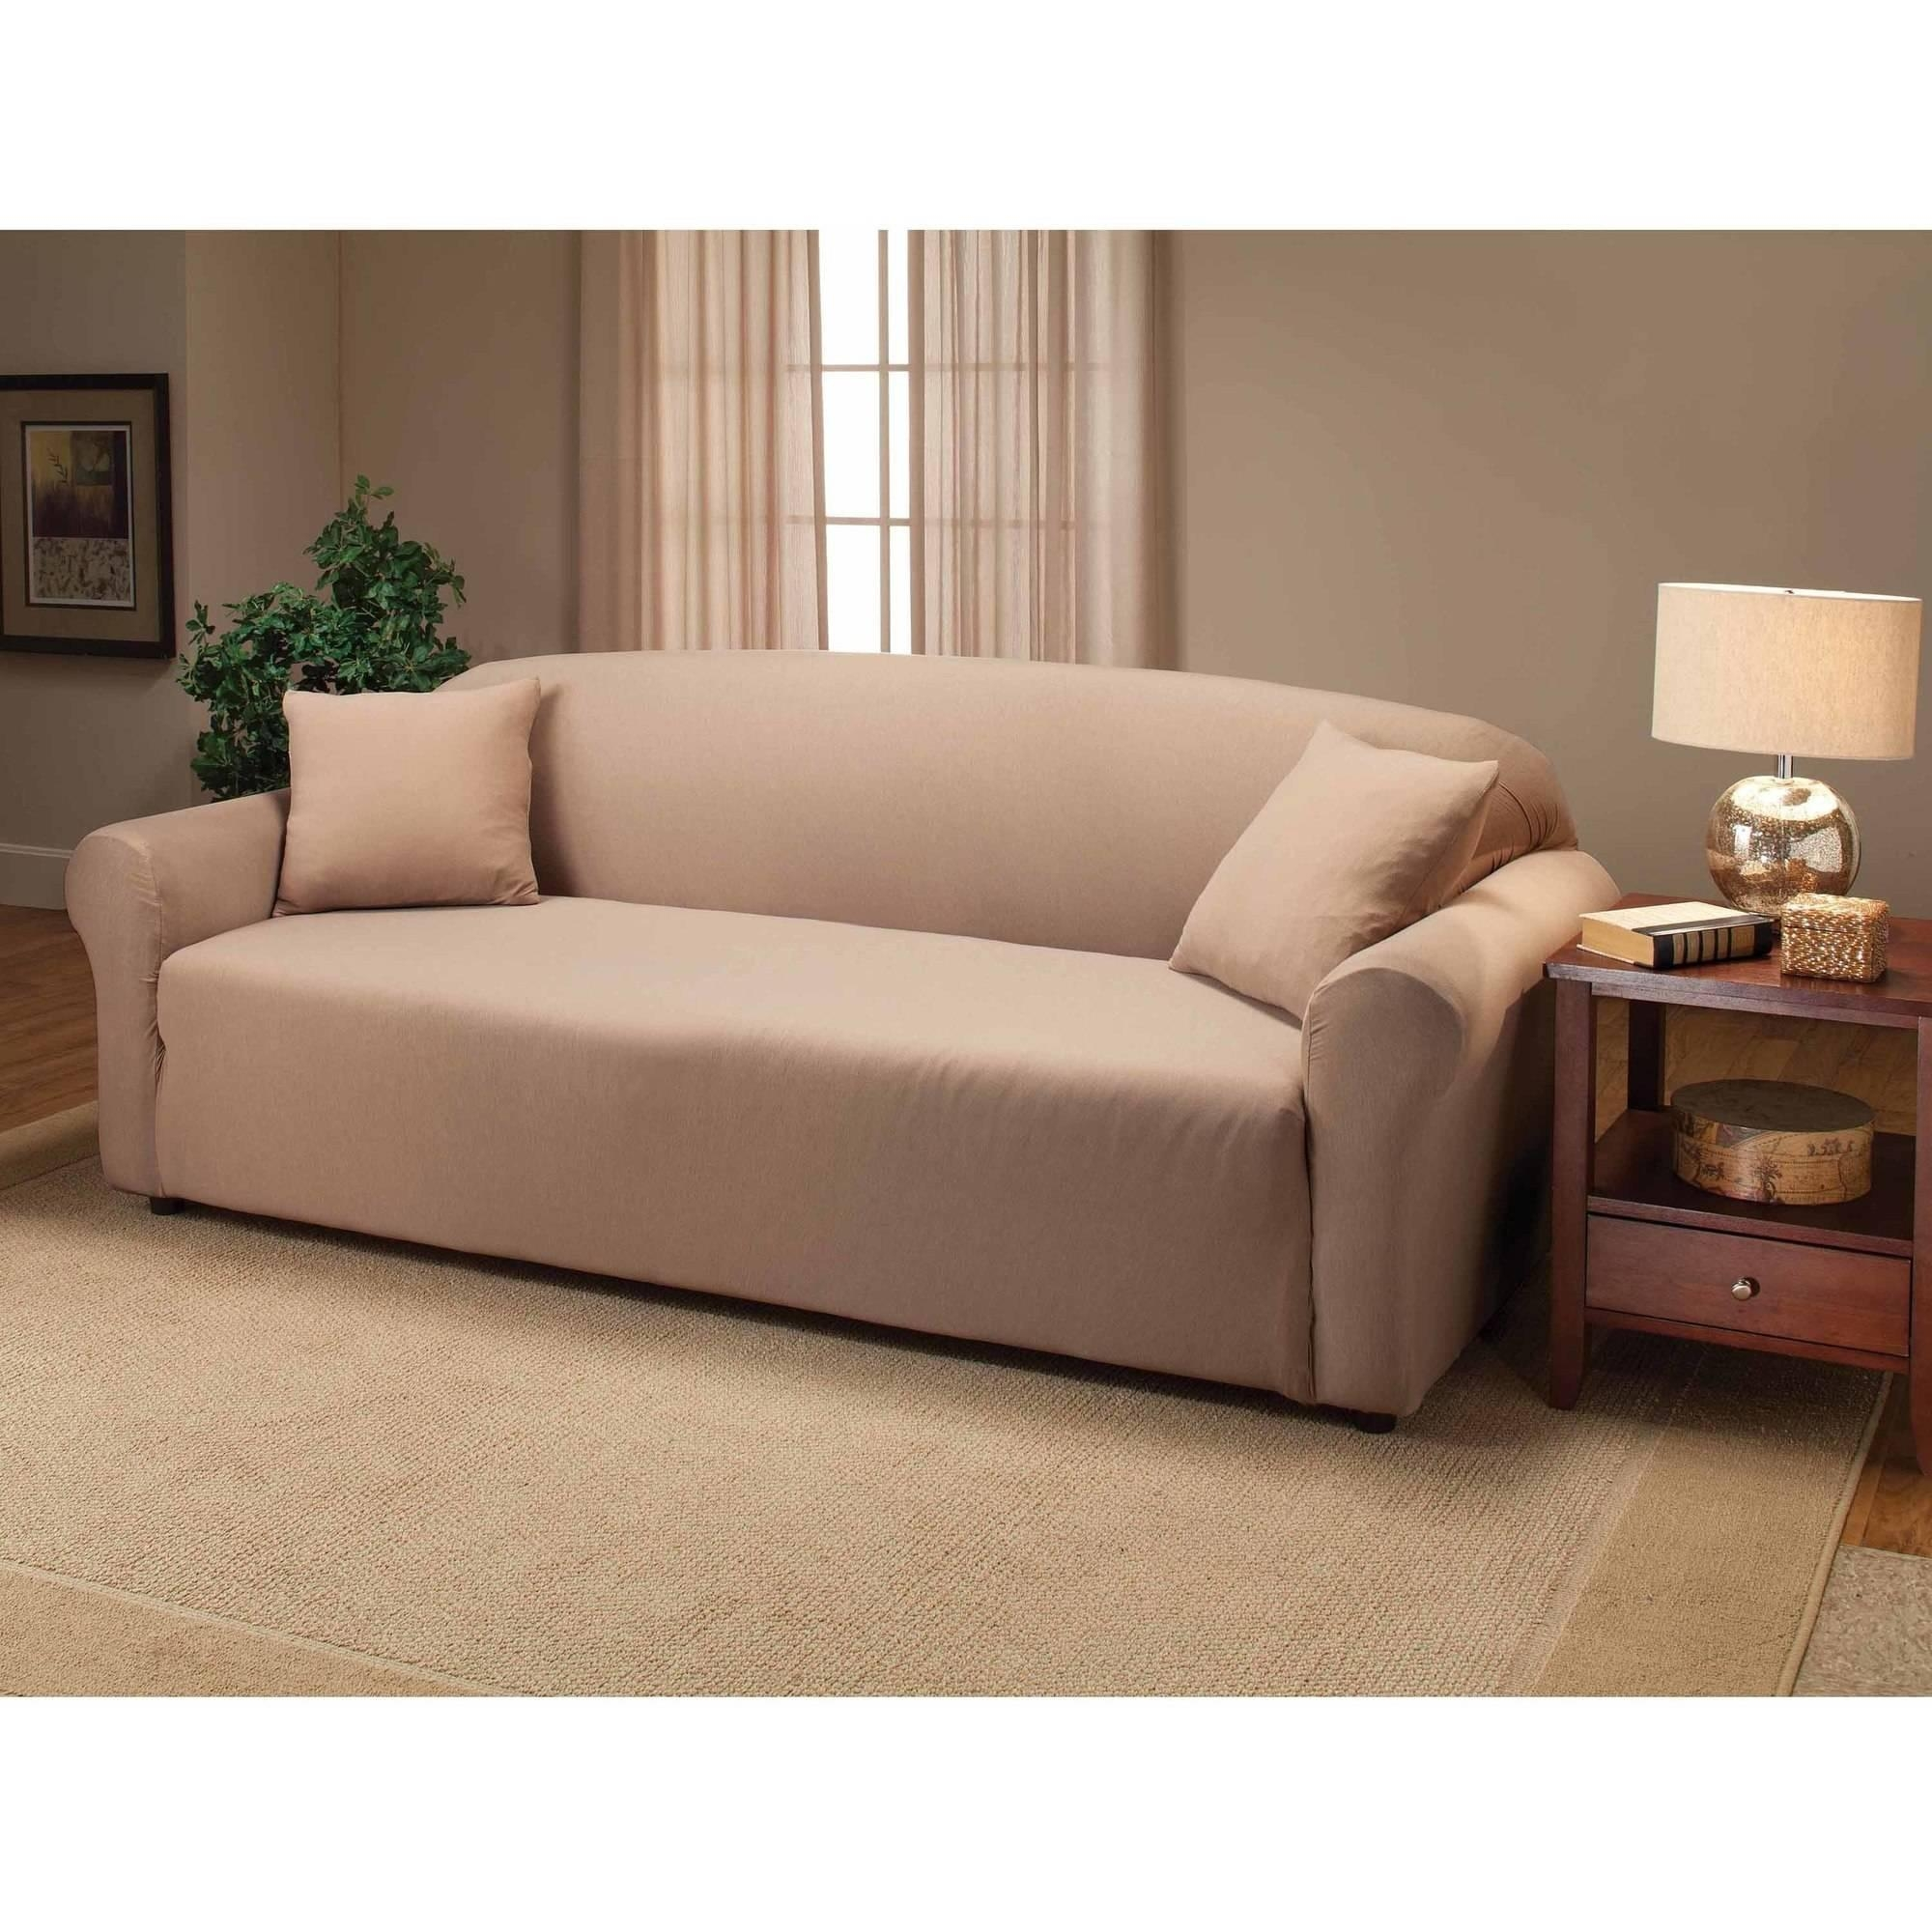 Sofas : Awesome Couch Arm Covers Sectional Couch Covers Extra For Large Sofa Slipcovers (Image 11 of 23)